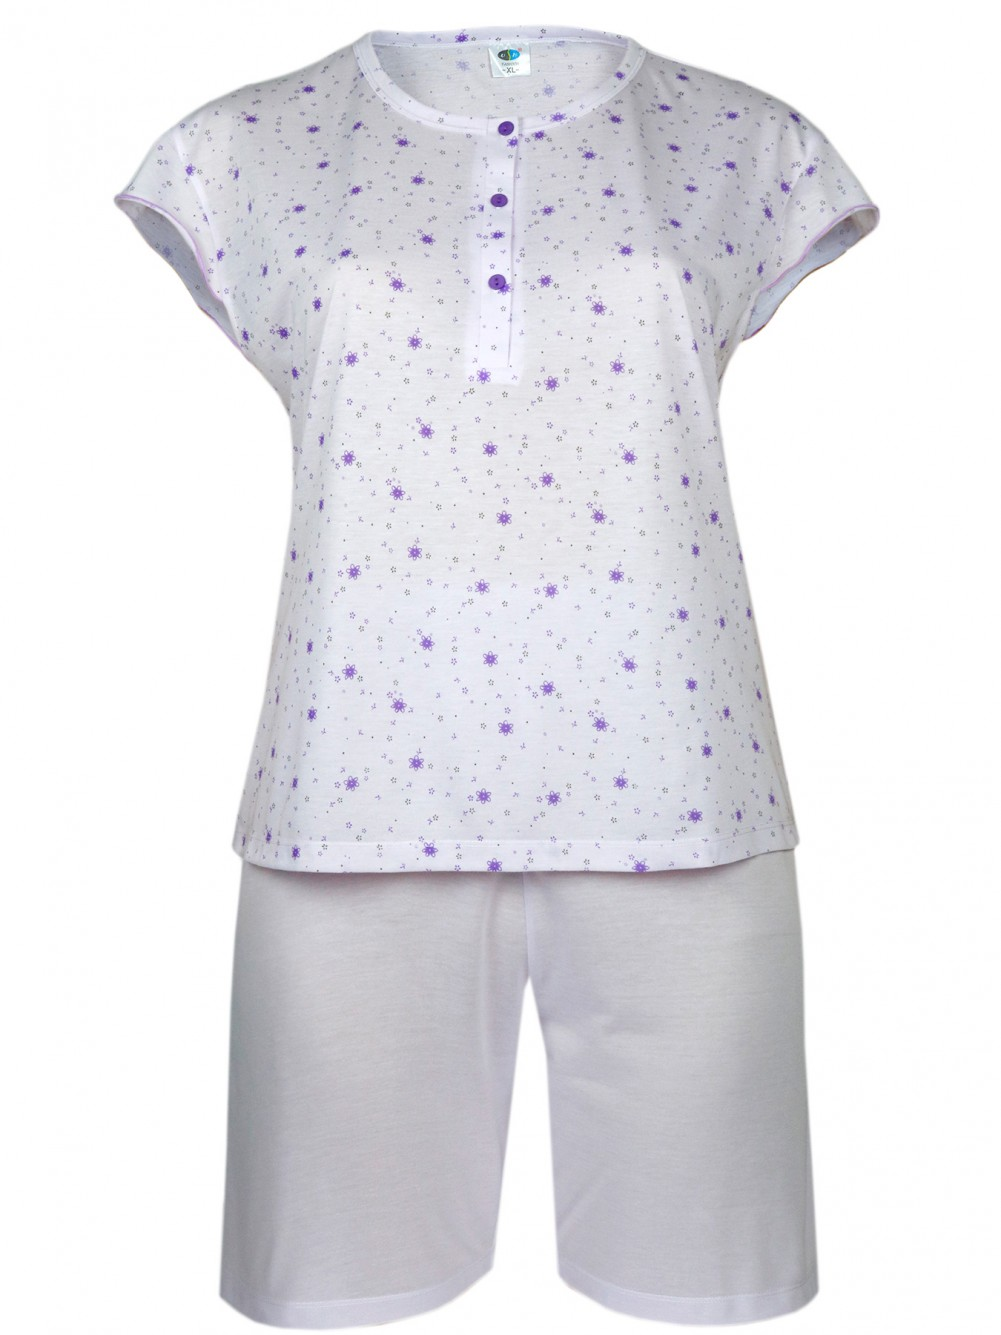 Damen Kurz-Pyjama, Shorty Set 100% Baumwolle - Lila